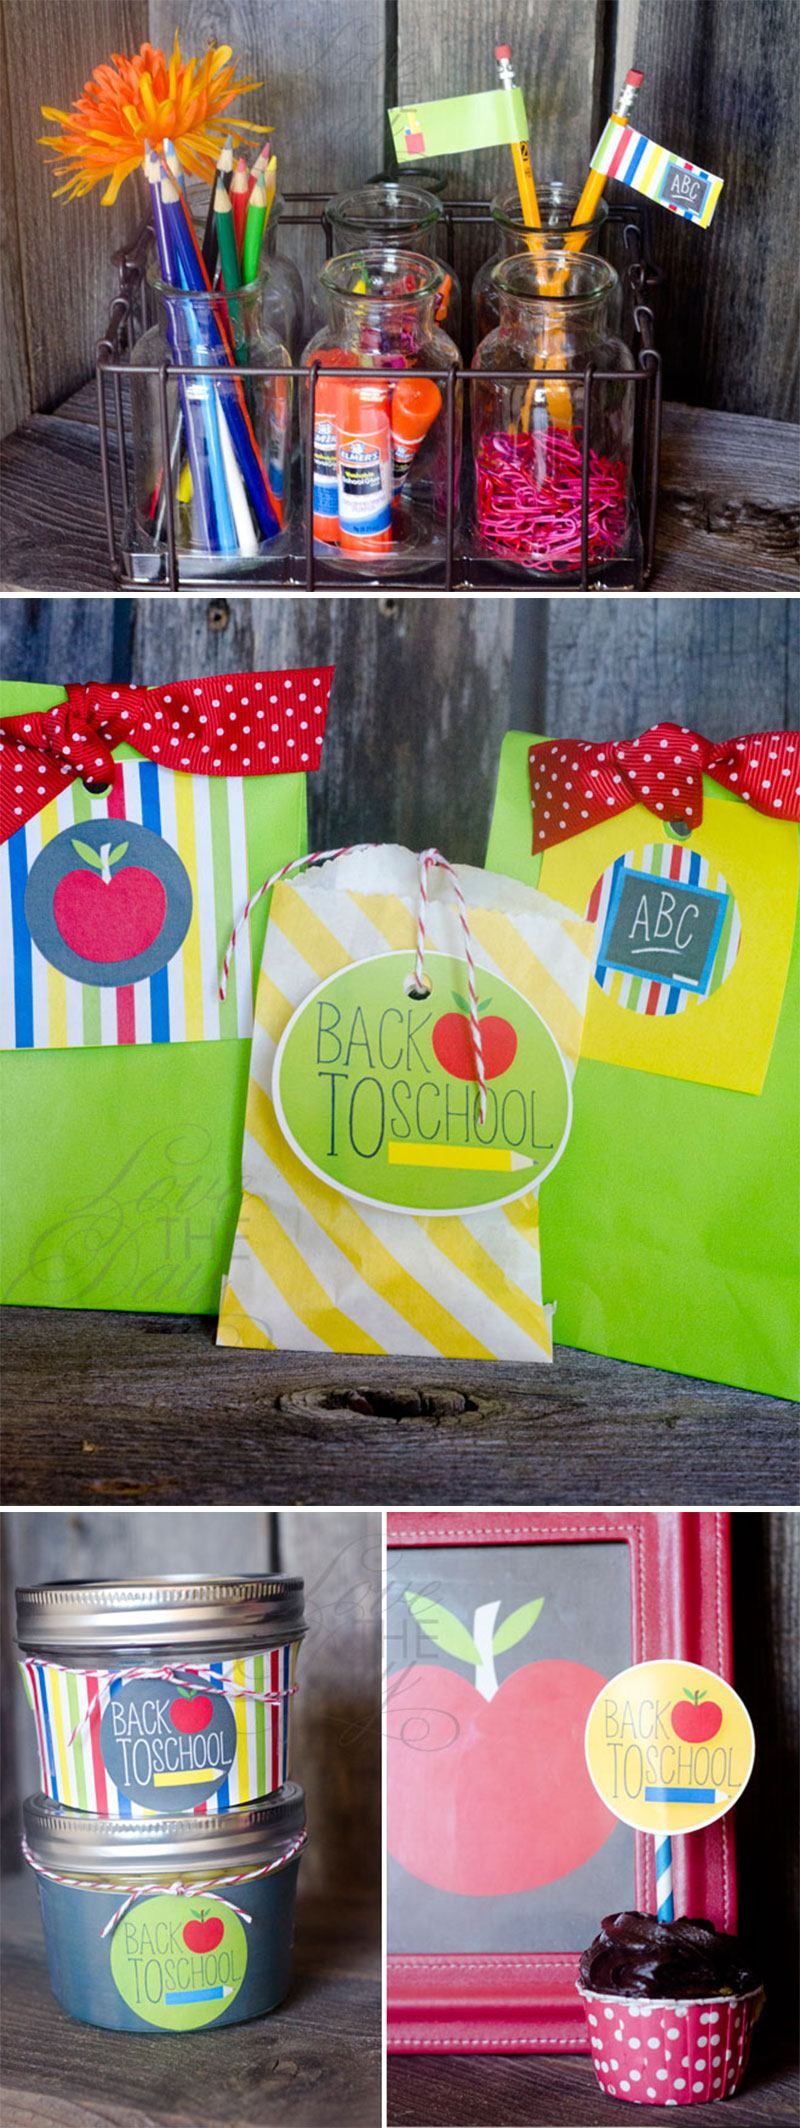 Back To School Party Ideas by Lindi Haws of Love The Day